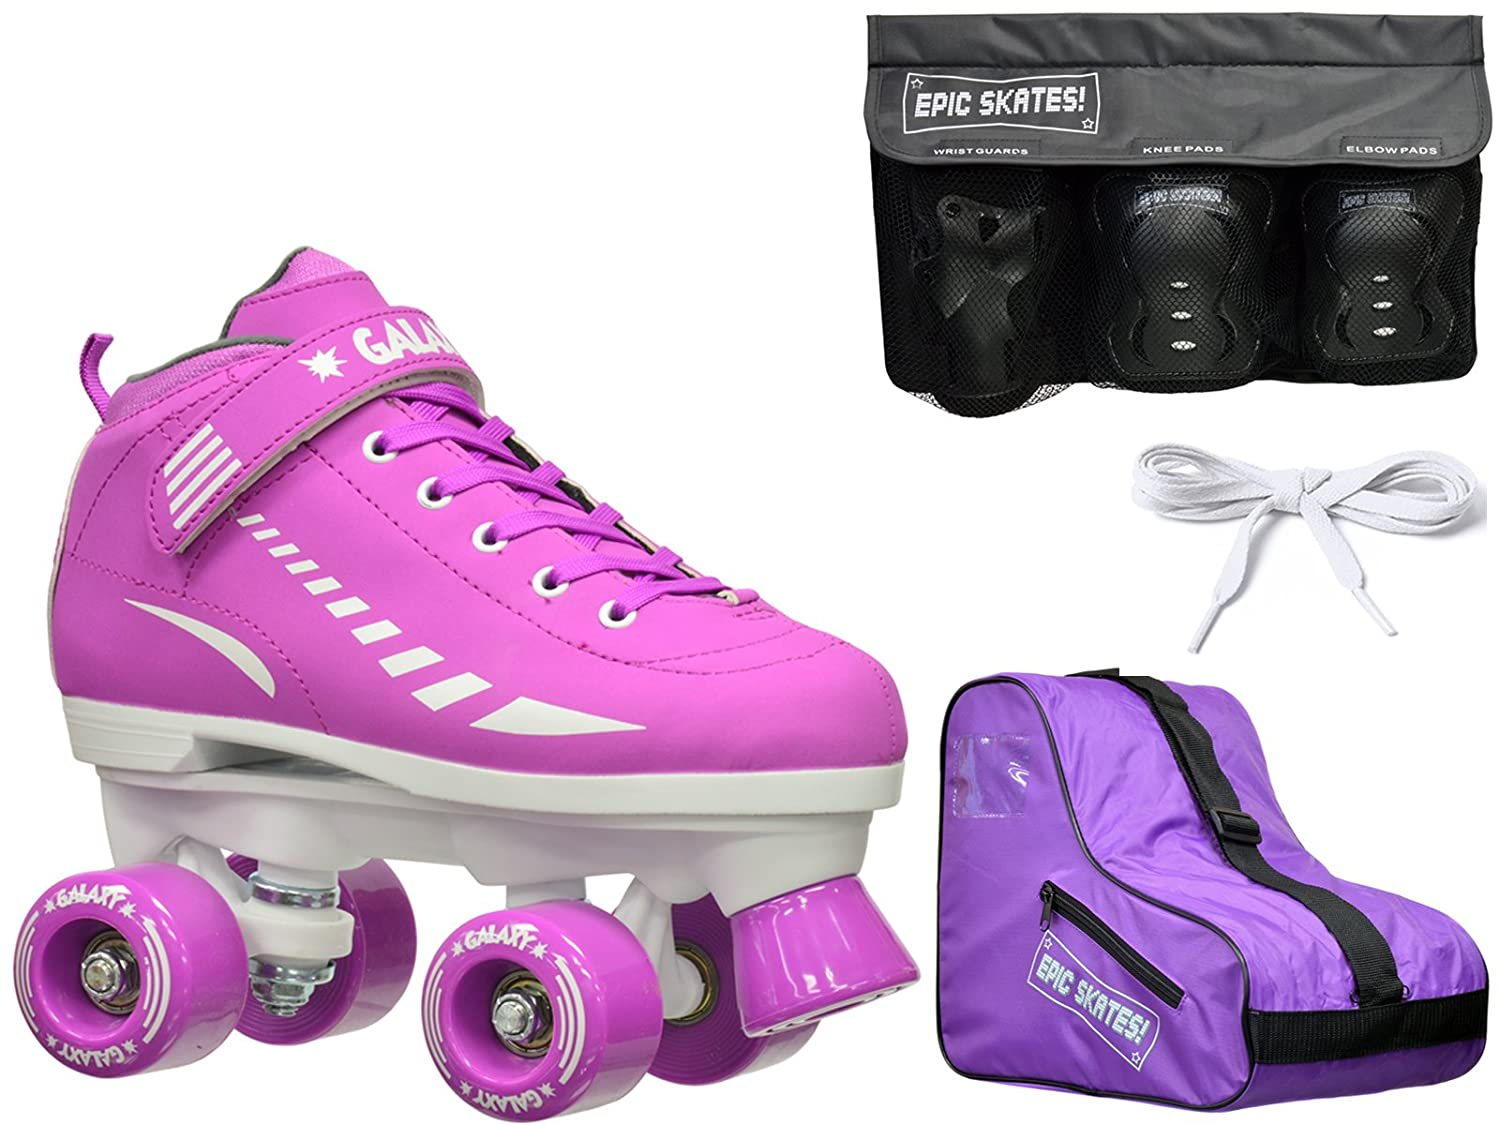 New 2016 Epic Galaxy Elite Purple Quad Roller Skate 4 Pc. Bundle w Safety Pads Bag